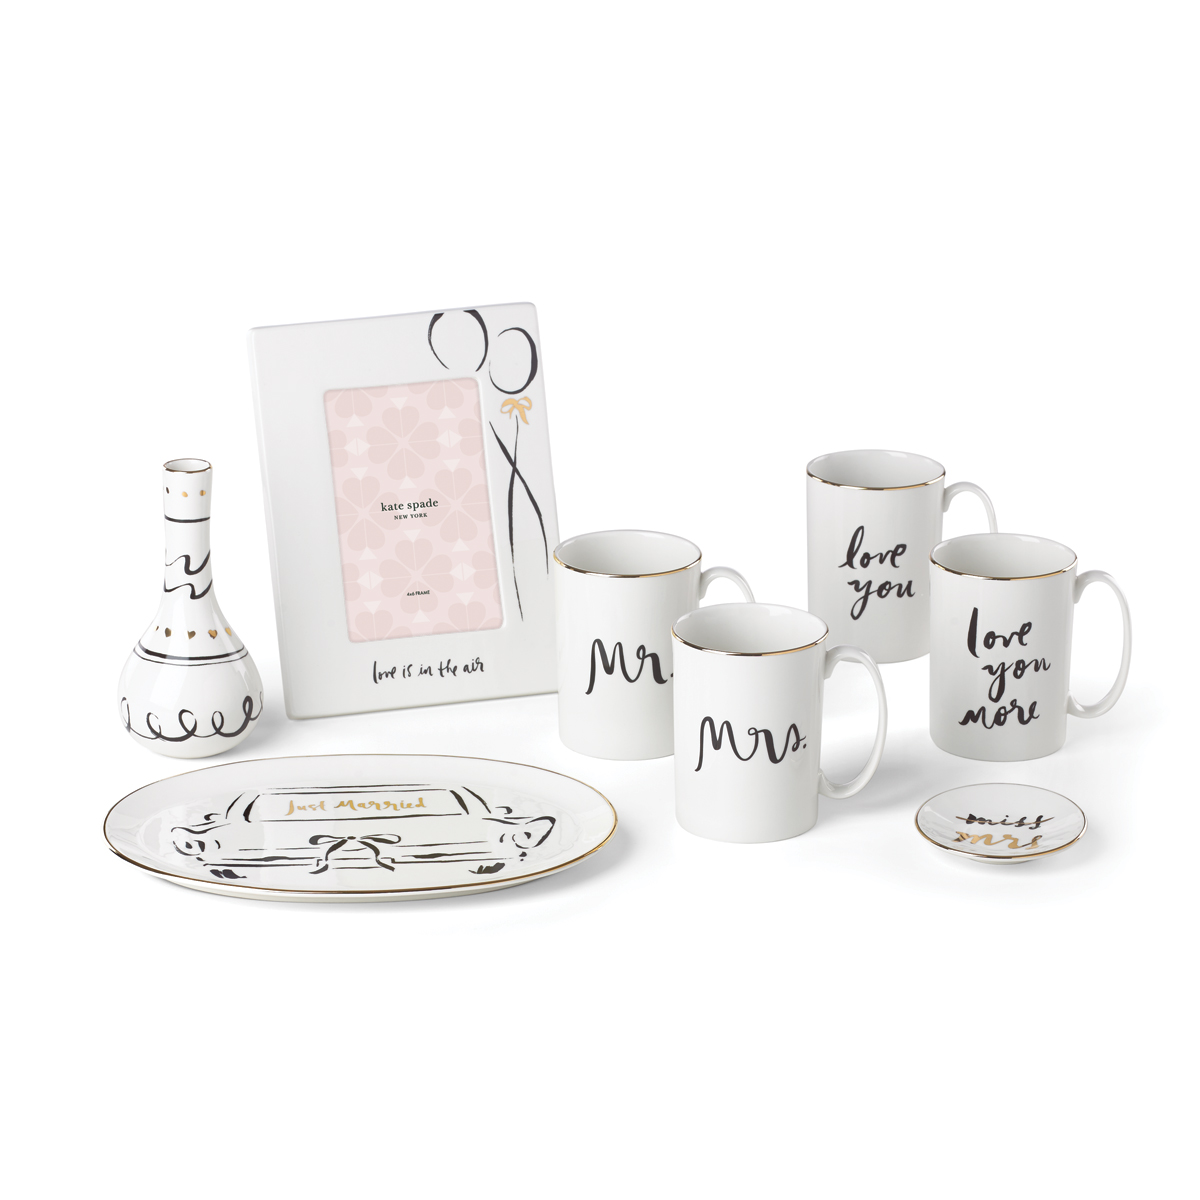 Kate Spade New York, Lenox Bridal Party Mr and Mrs Mug Set